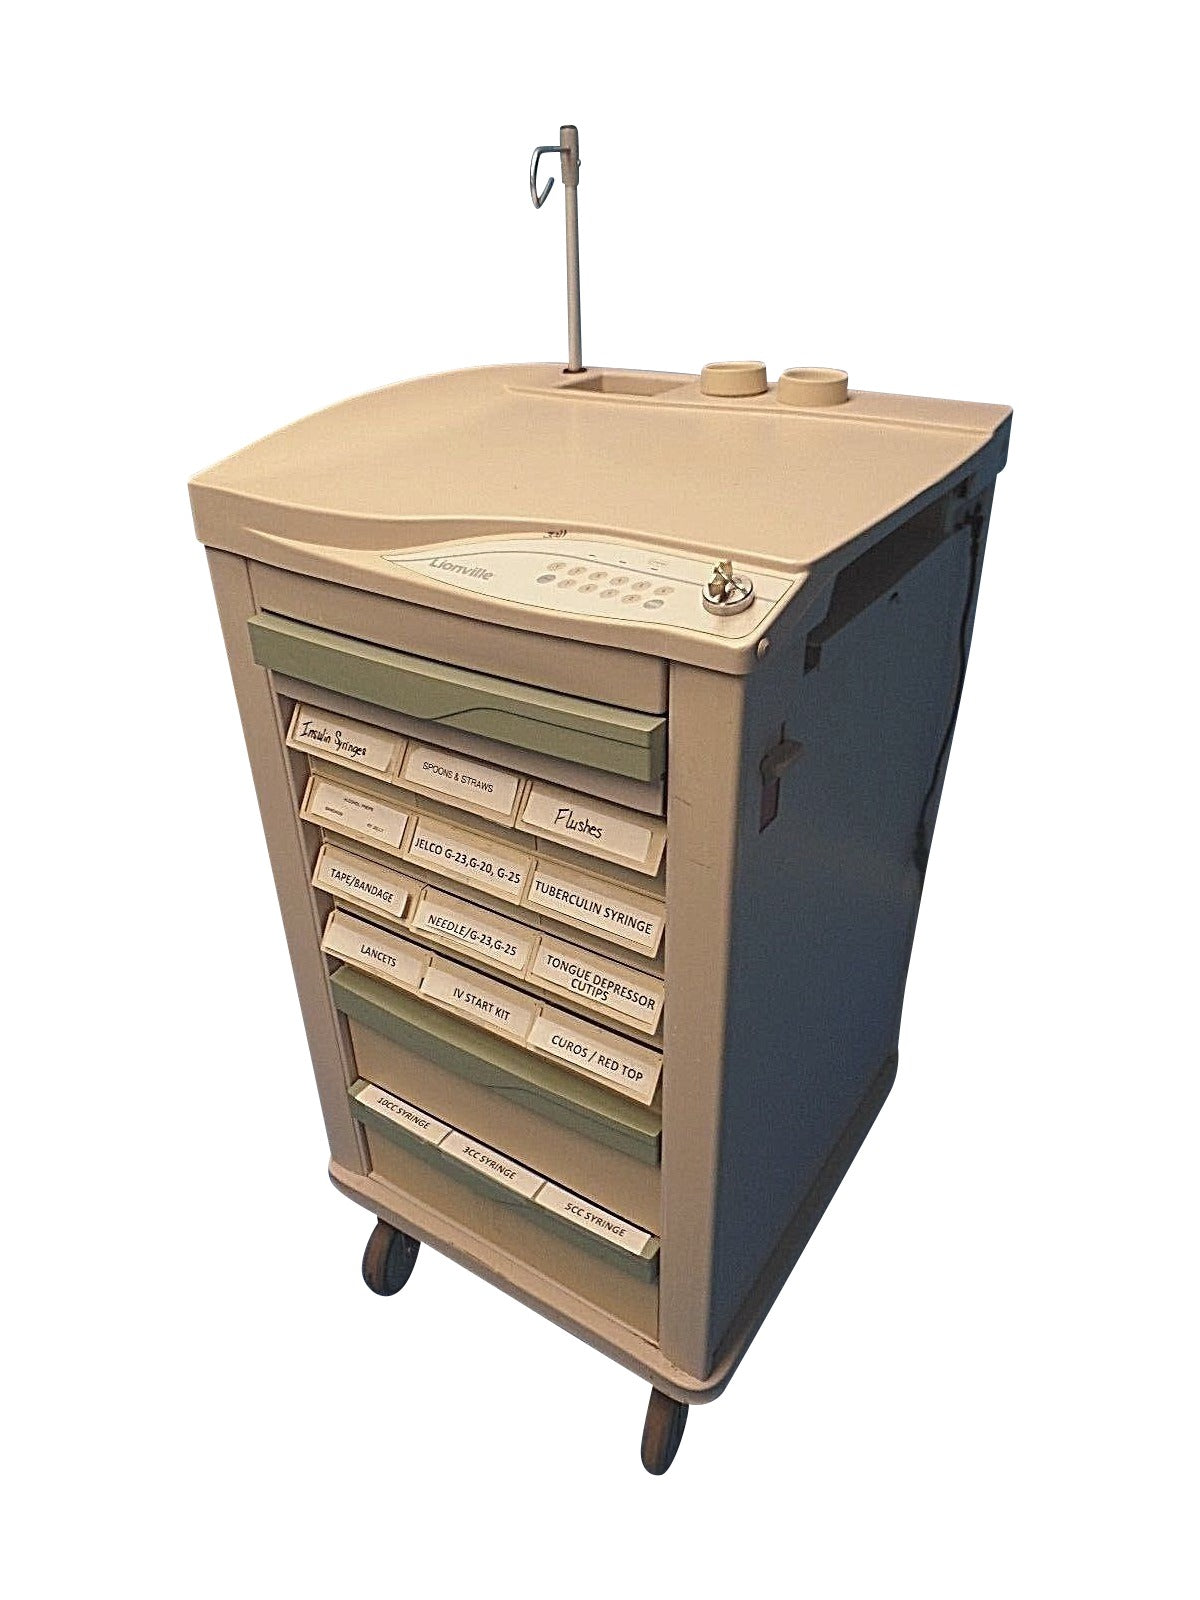 Lionville Model 800 Medication Cart